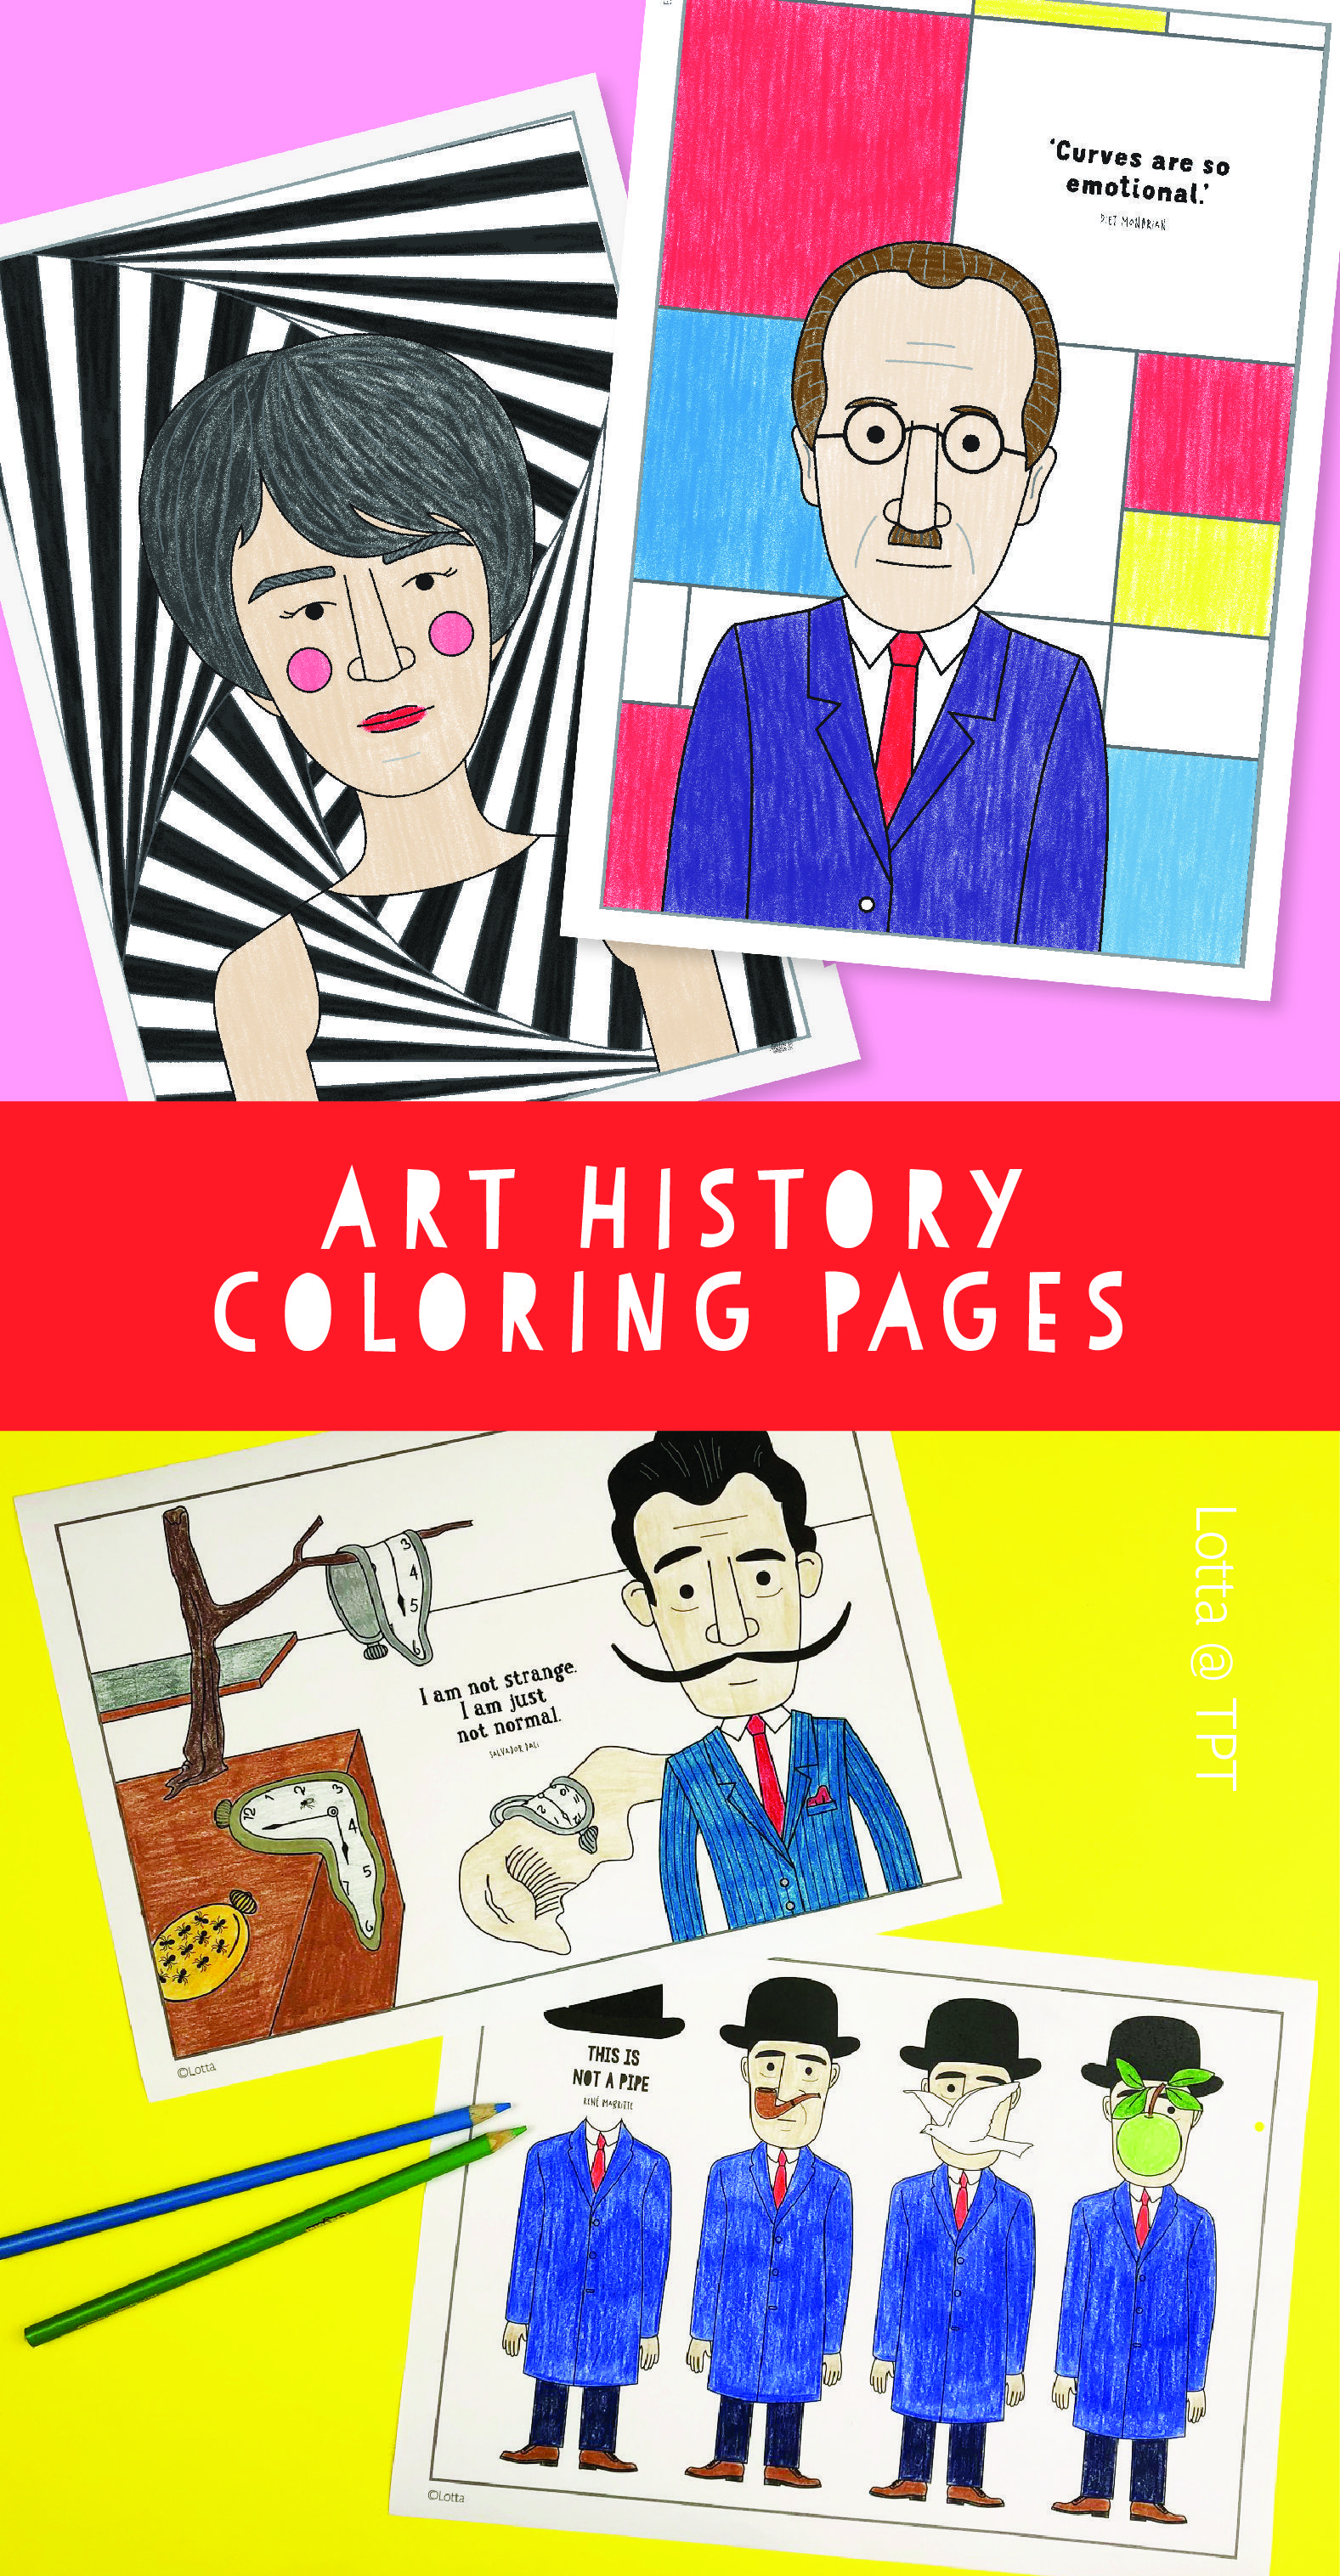 art history coloring pages for kids in 2020  art history